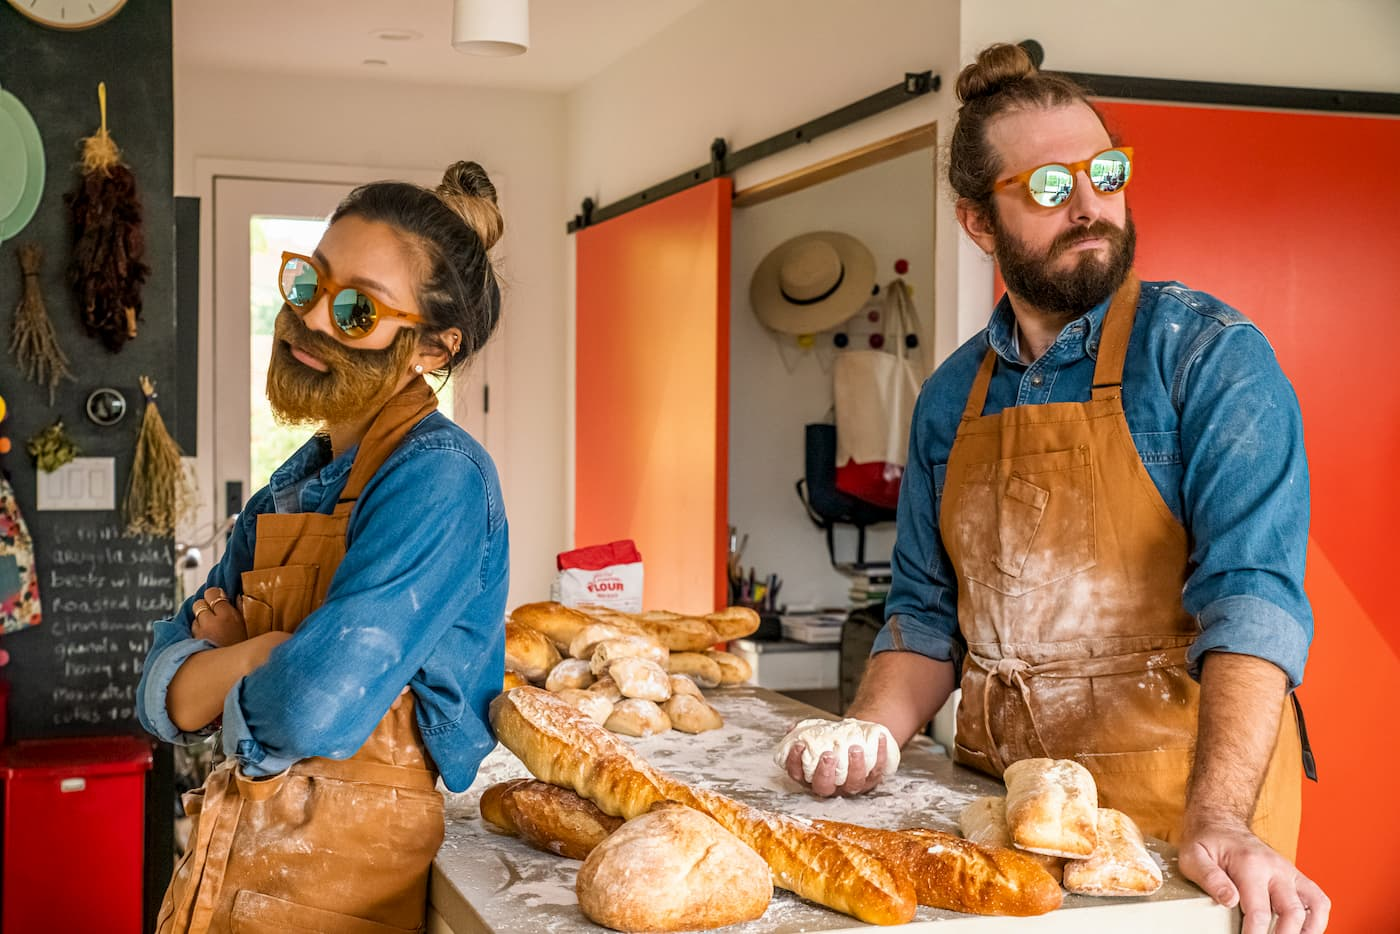 Yellow round mirrored sunglasses on man and woman baking bread